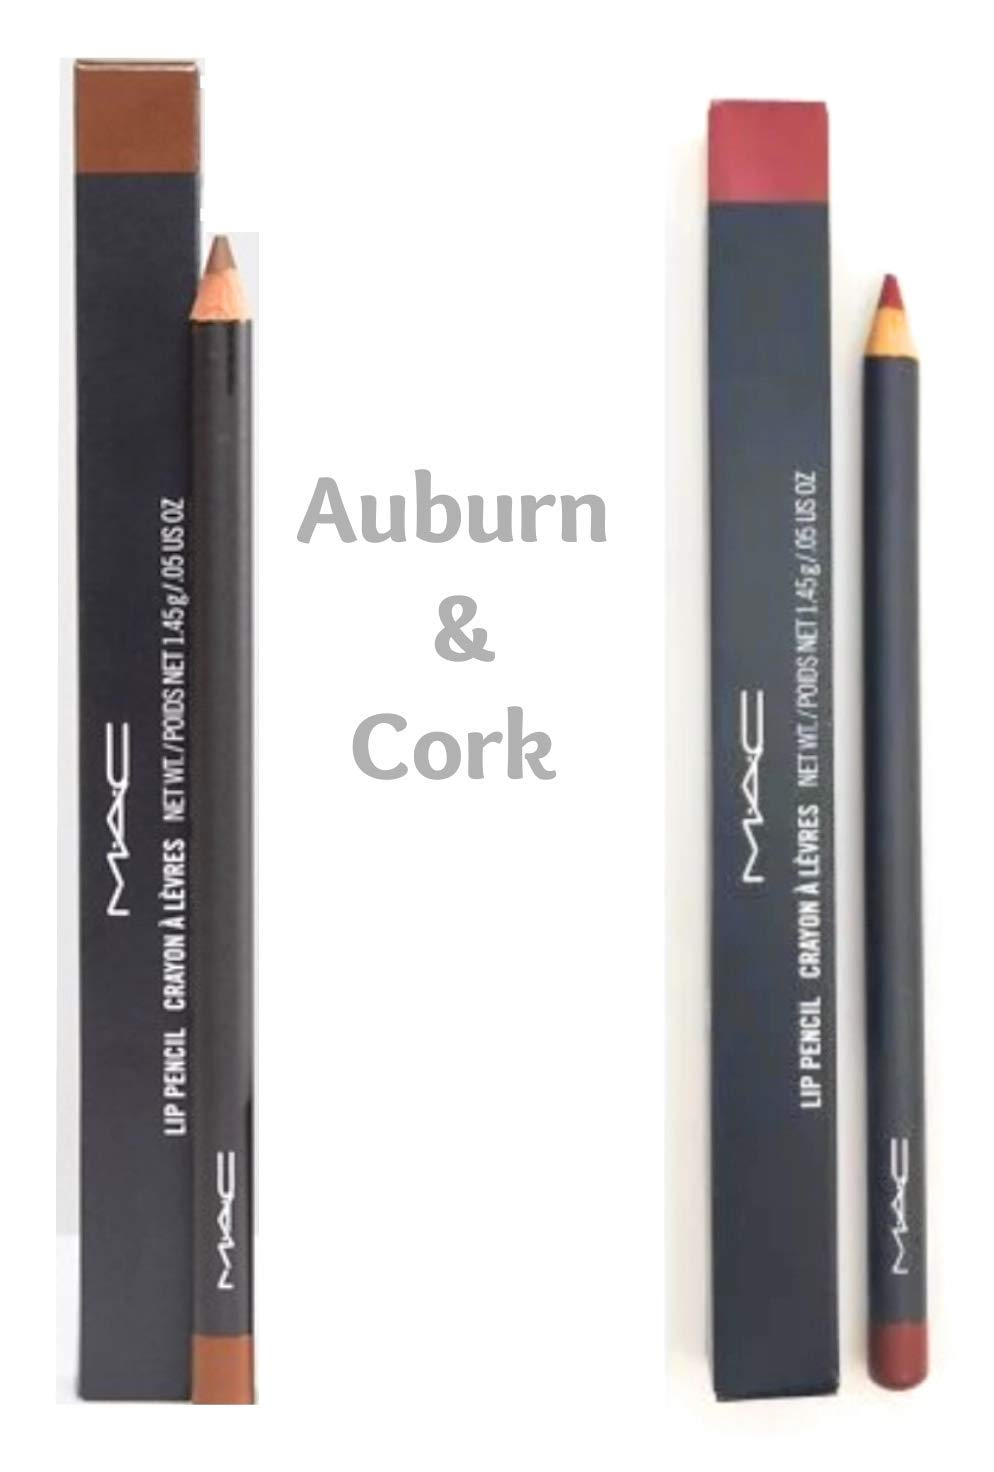 Set of 2 MAC Lip Care - Lip Pencil - Auburn by MAC